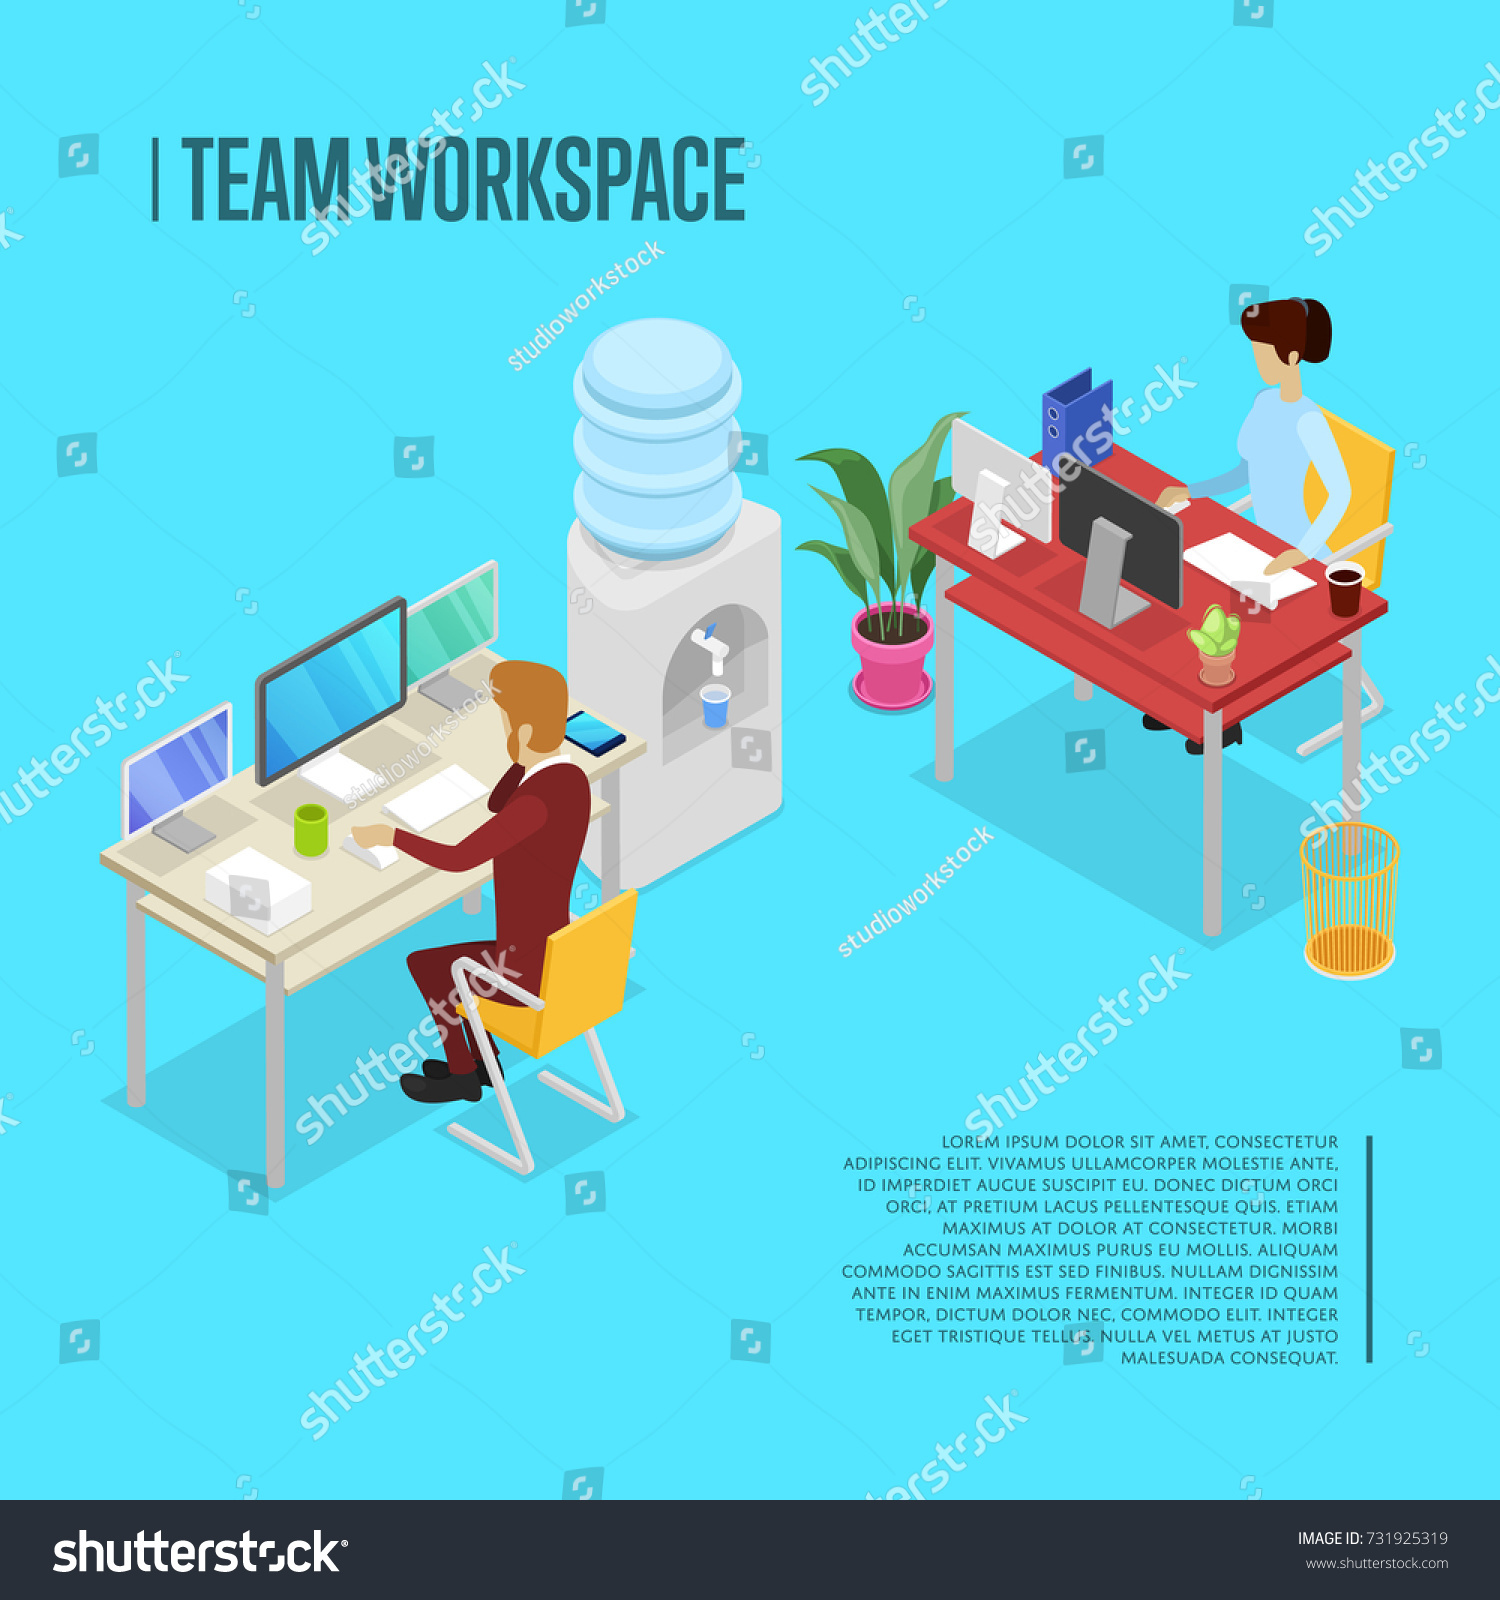 Modern Team Workspace Isometric Poster Corporate Office Life Concept With Busy Business People Working In